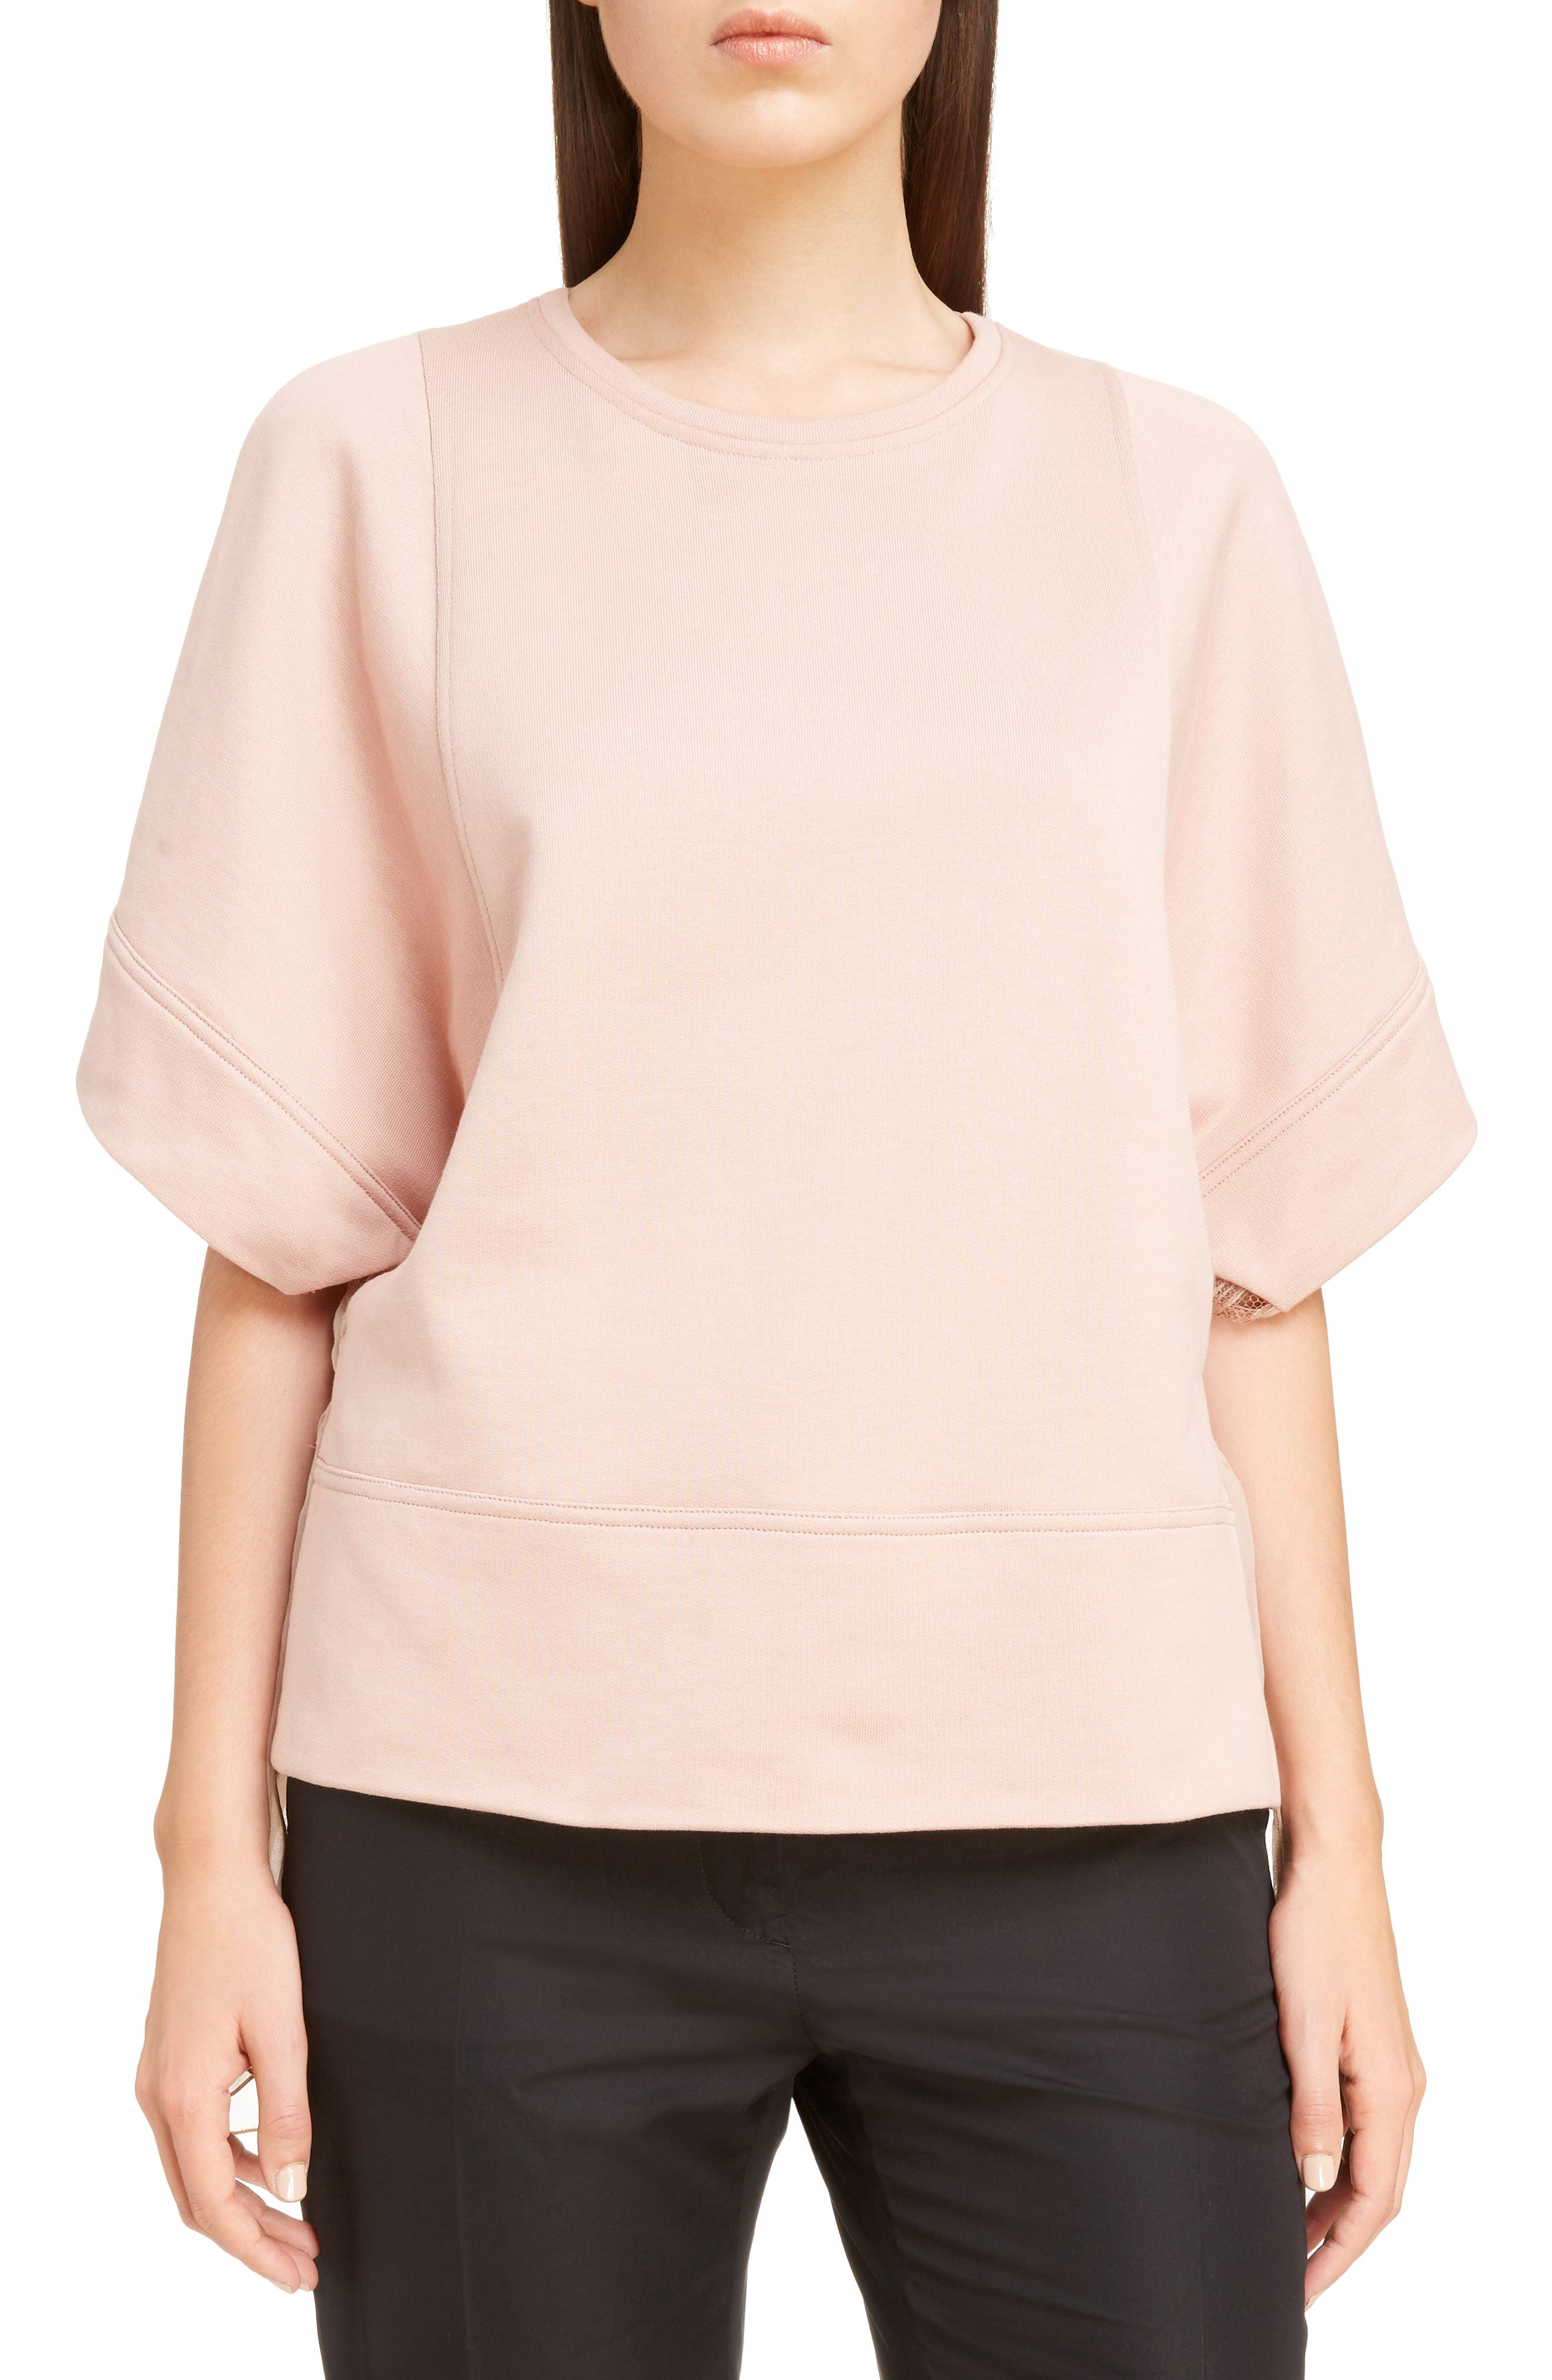 Nº21 Chiffon Back Sweatshirt,                         Main,                         color, Nudo